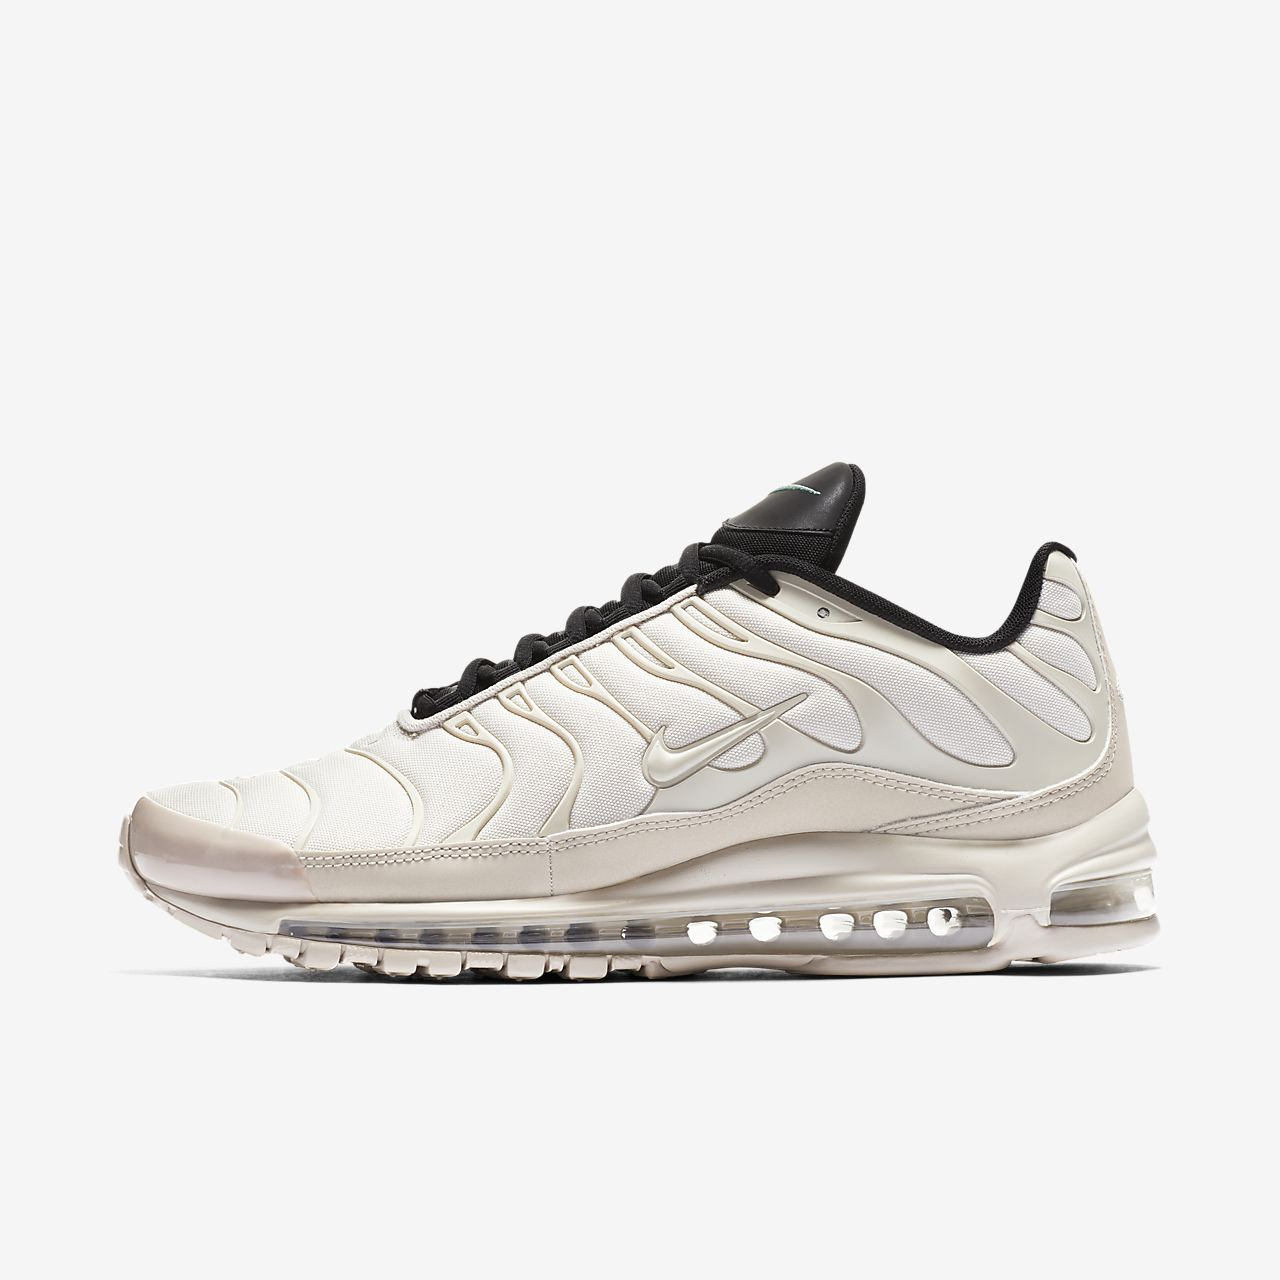 best website 9e8bd 9ea00 nike air max 97 uomo Scarpa Nike Air Max 97 Plus - Uomo. CH